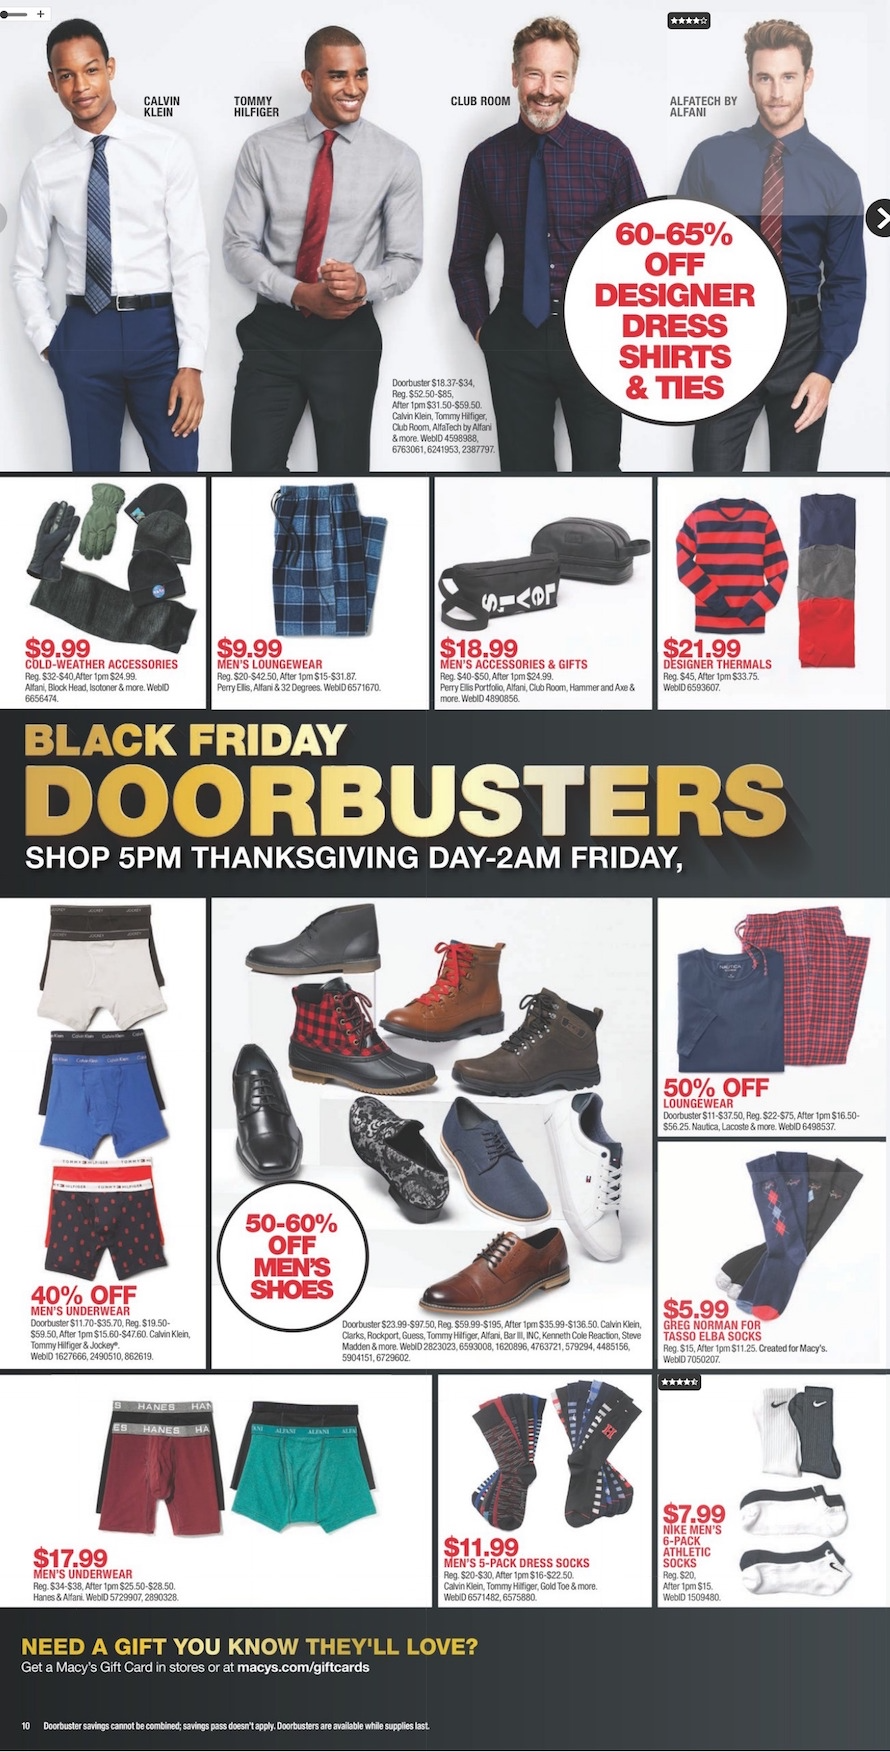 33301dc5bf1 Macy's Black Friday 2018 Ad, Deals and Store Hours - NerdWallet